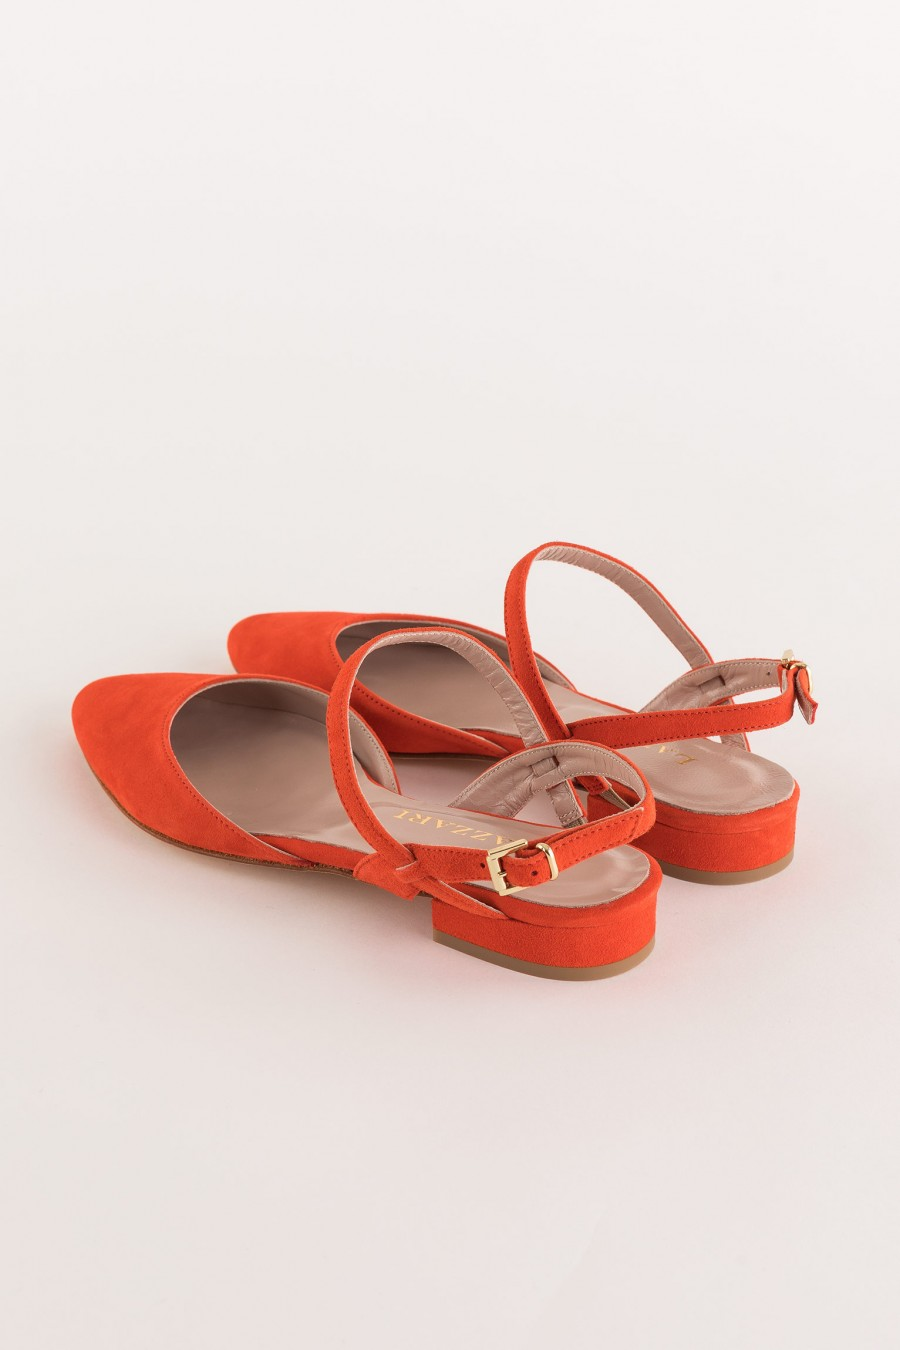 coral-colored leather ballerina